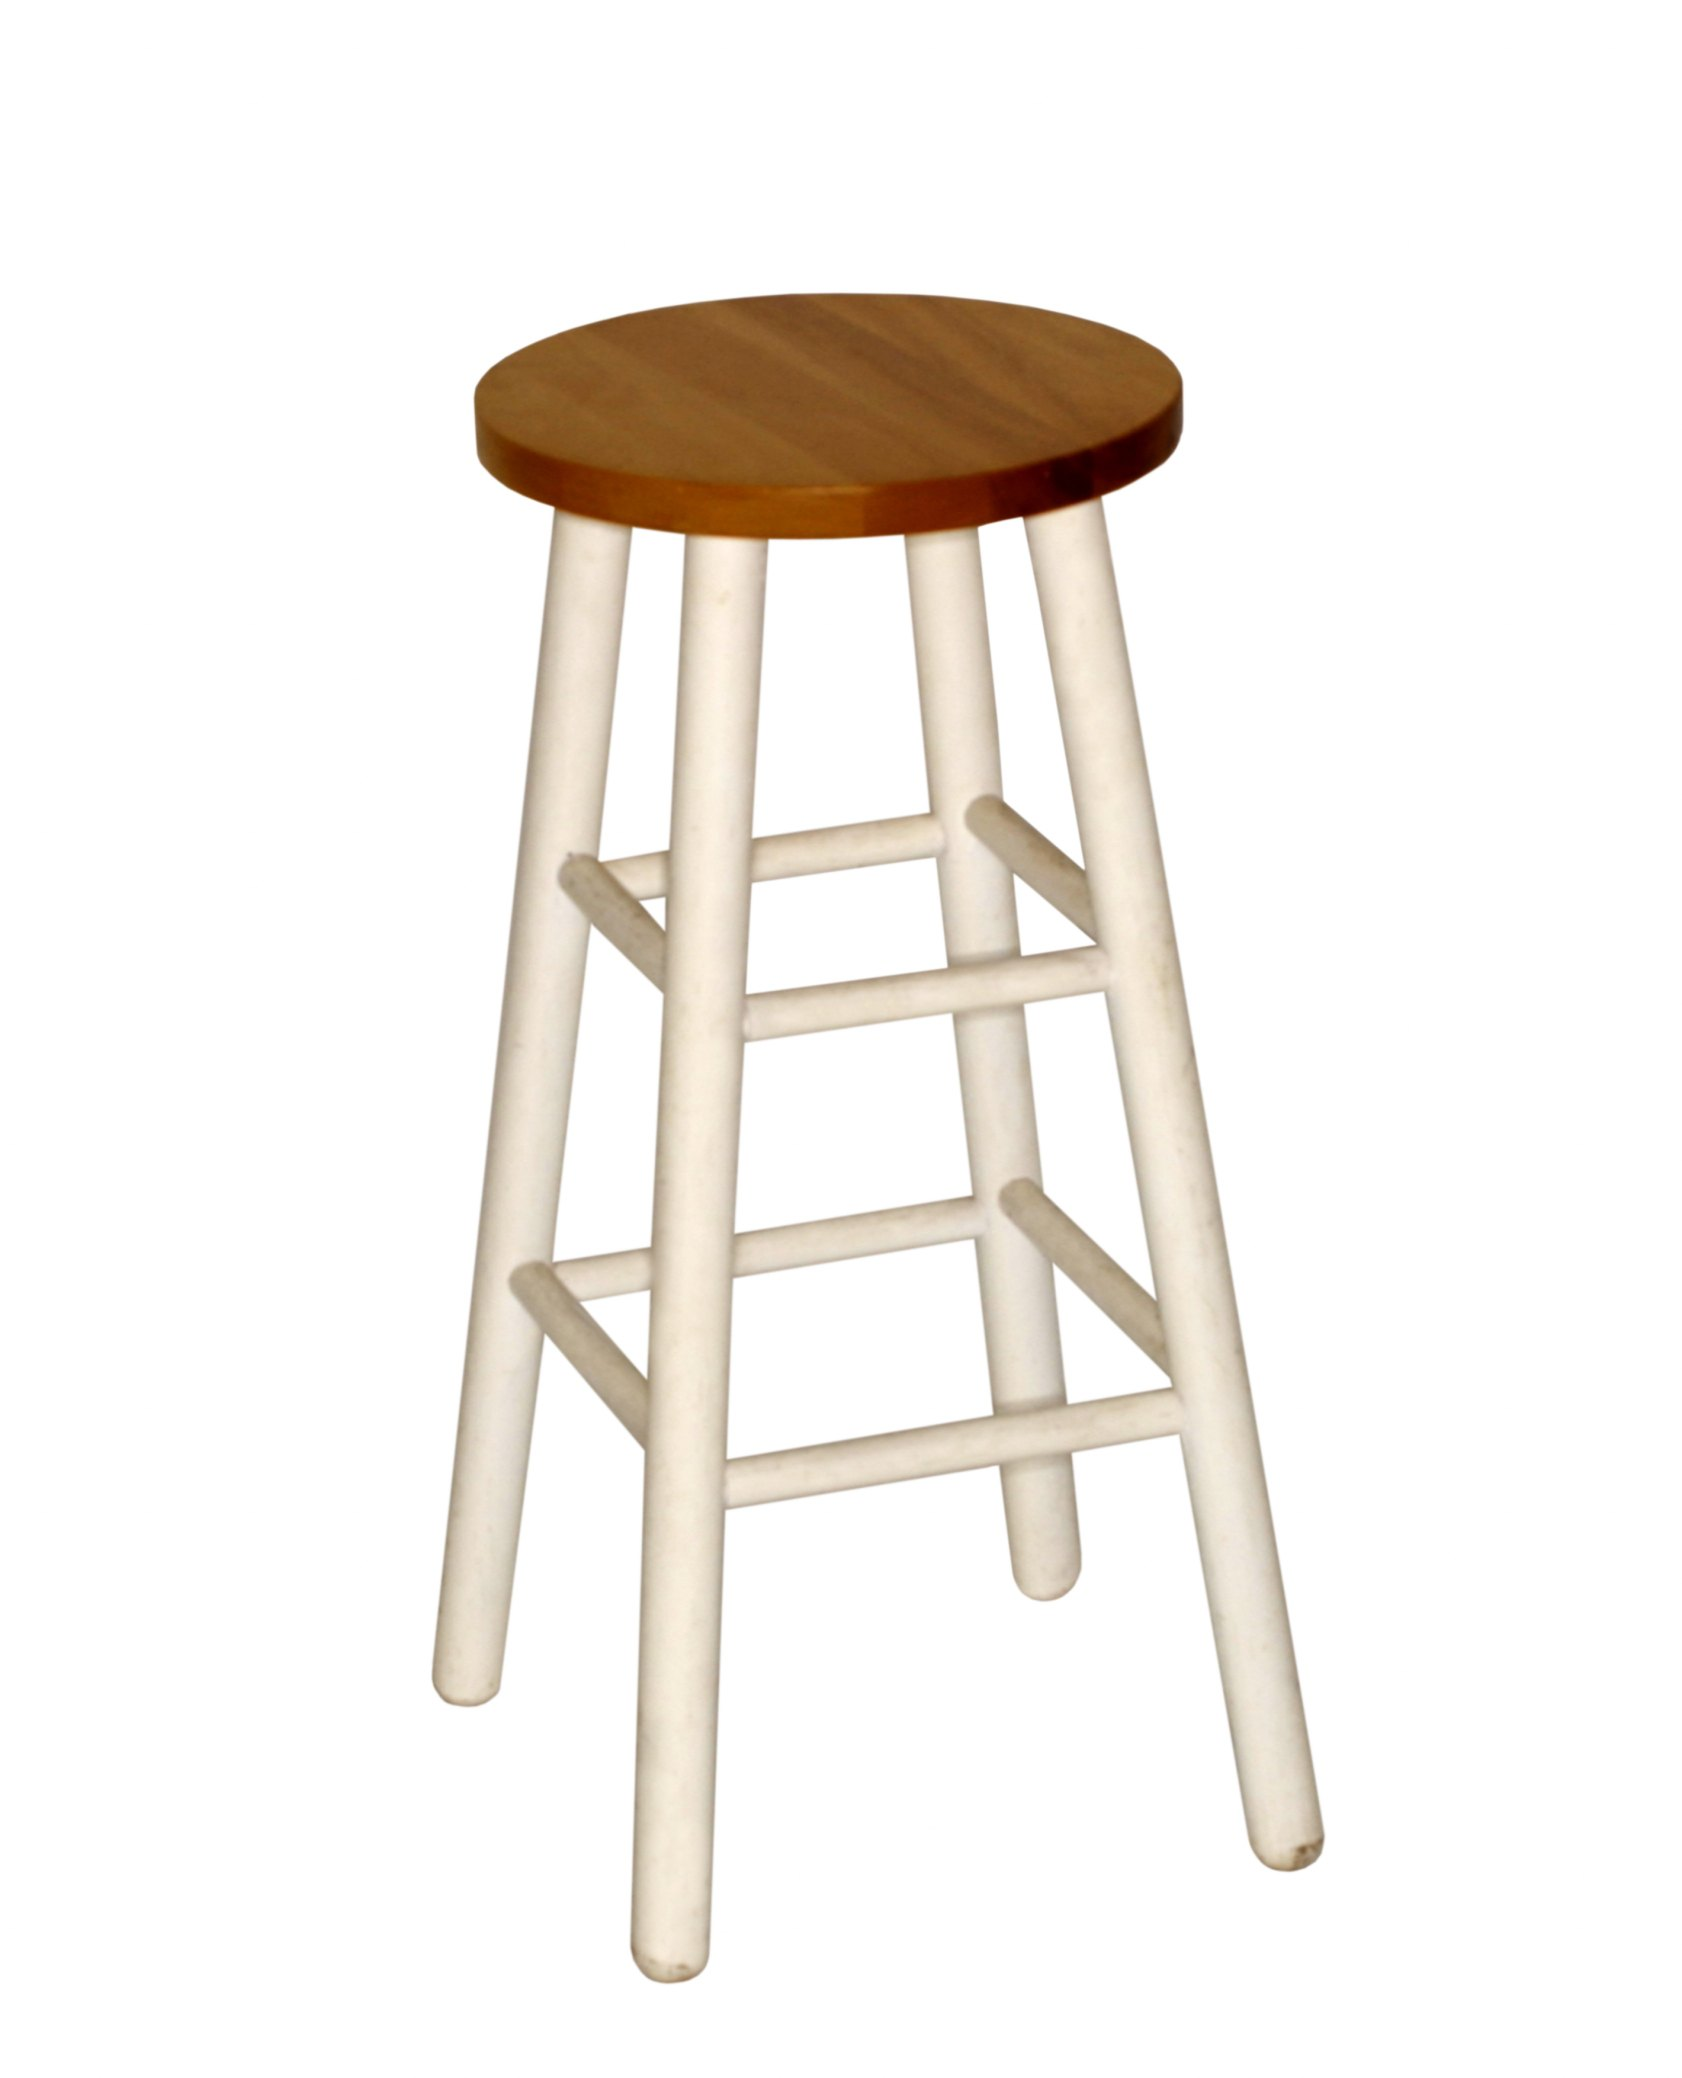 How To Fix Squeaky Bar Stools Ehow